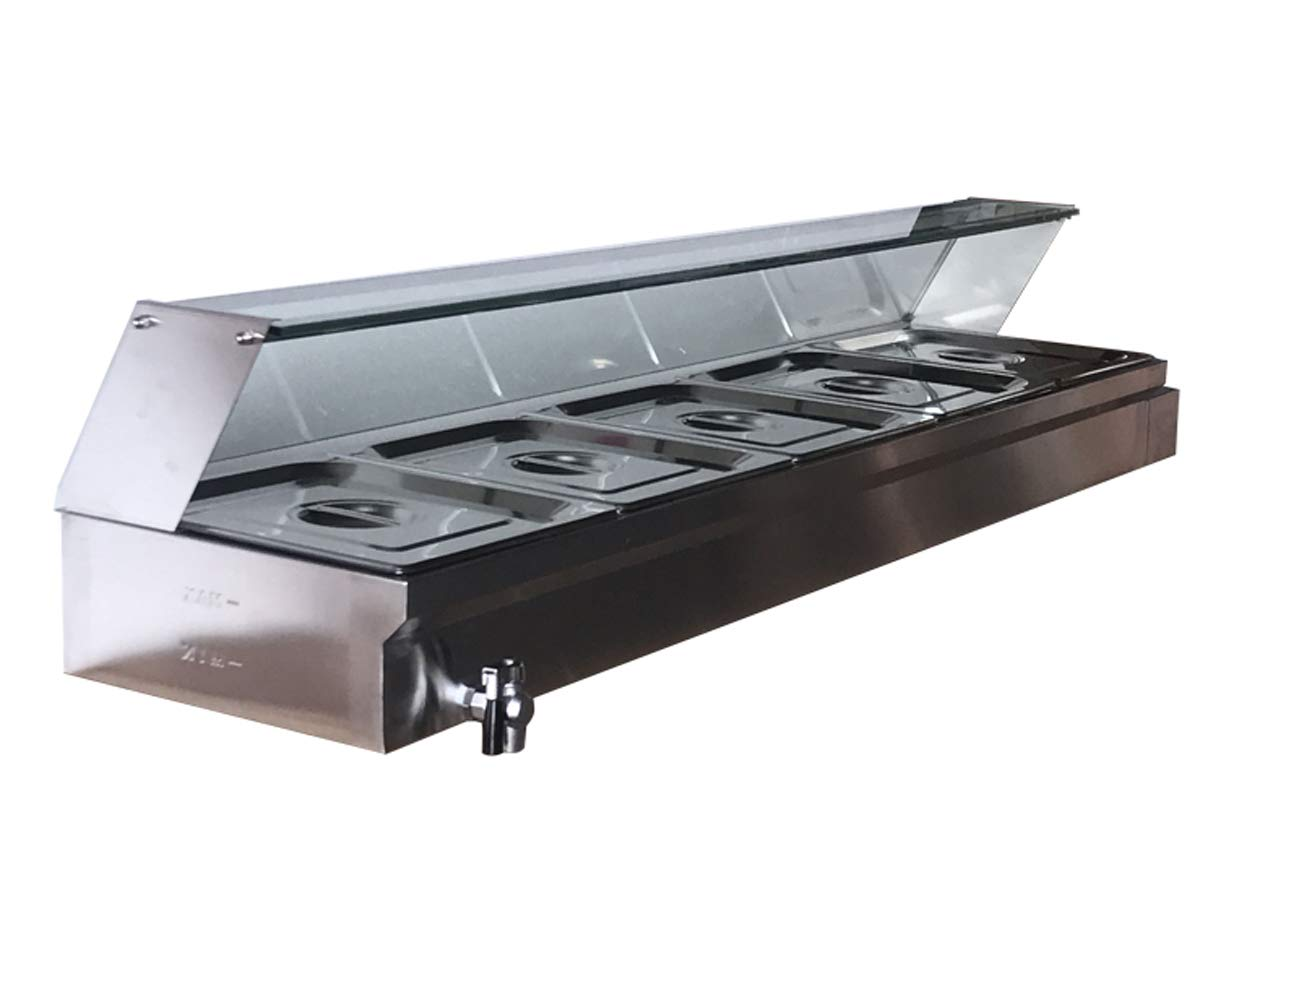 INTBUYING Stainless Bain Marie Countertop Restaurant